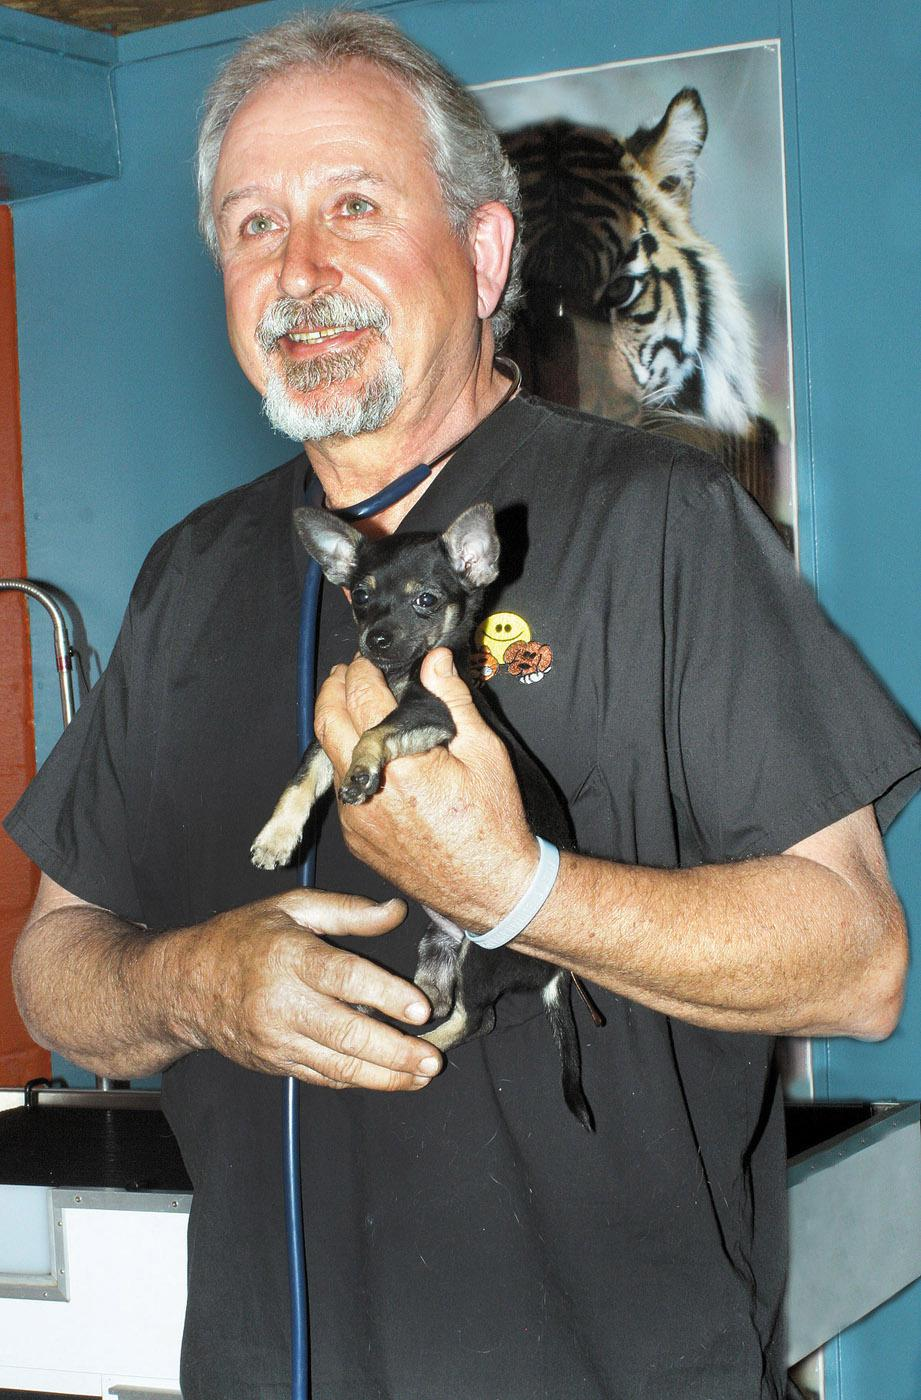 Perkins holds one of his small patients Wednesday at Iuka Animal Clinic, the practice he started after his 1971 graduation. (Photo by Steve Beavers, Daily Corinthian)